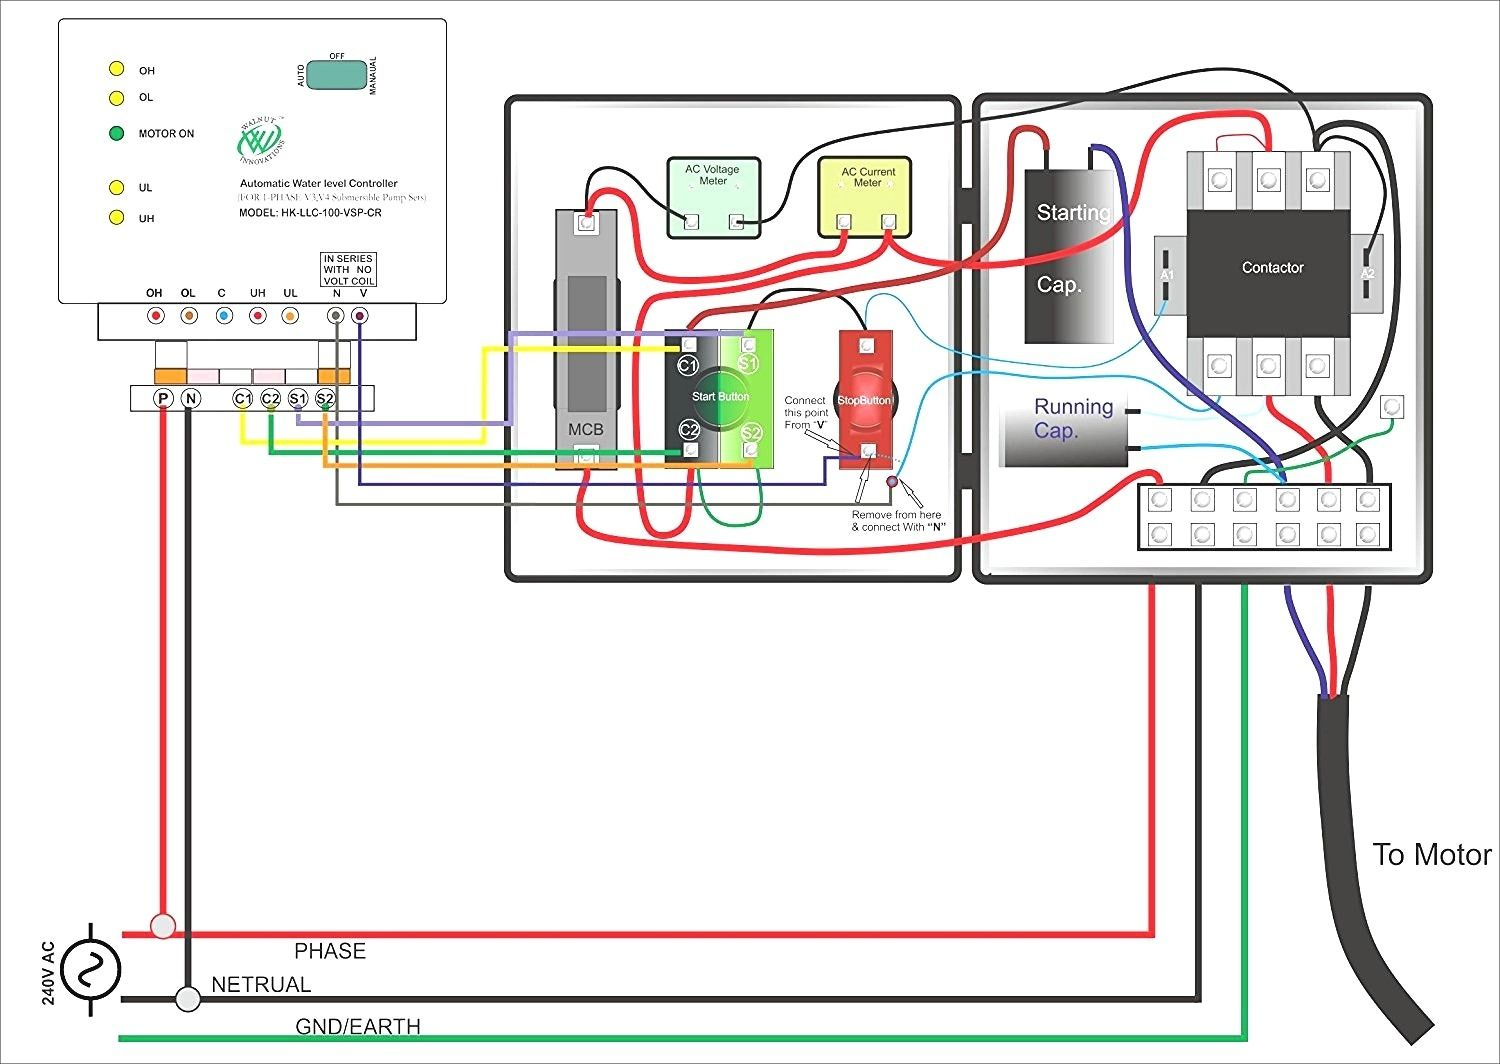 single phase submersible pump starter wiring diagram gooddy org best box diagram besides 3 phase electrical diagram symbols further 2009 [ 1500 x 1064 Pixel ]